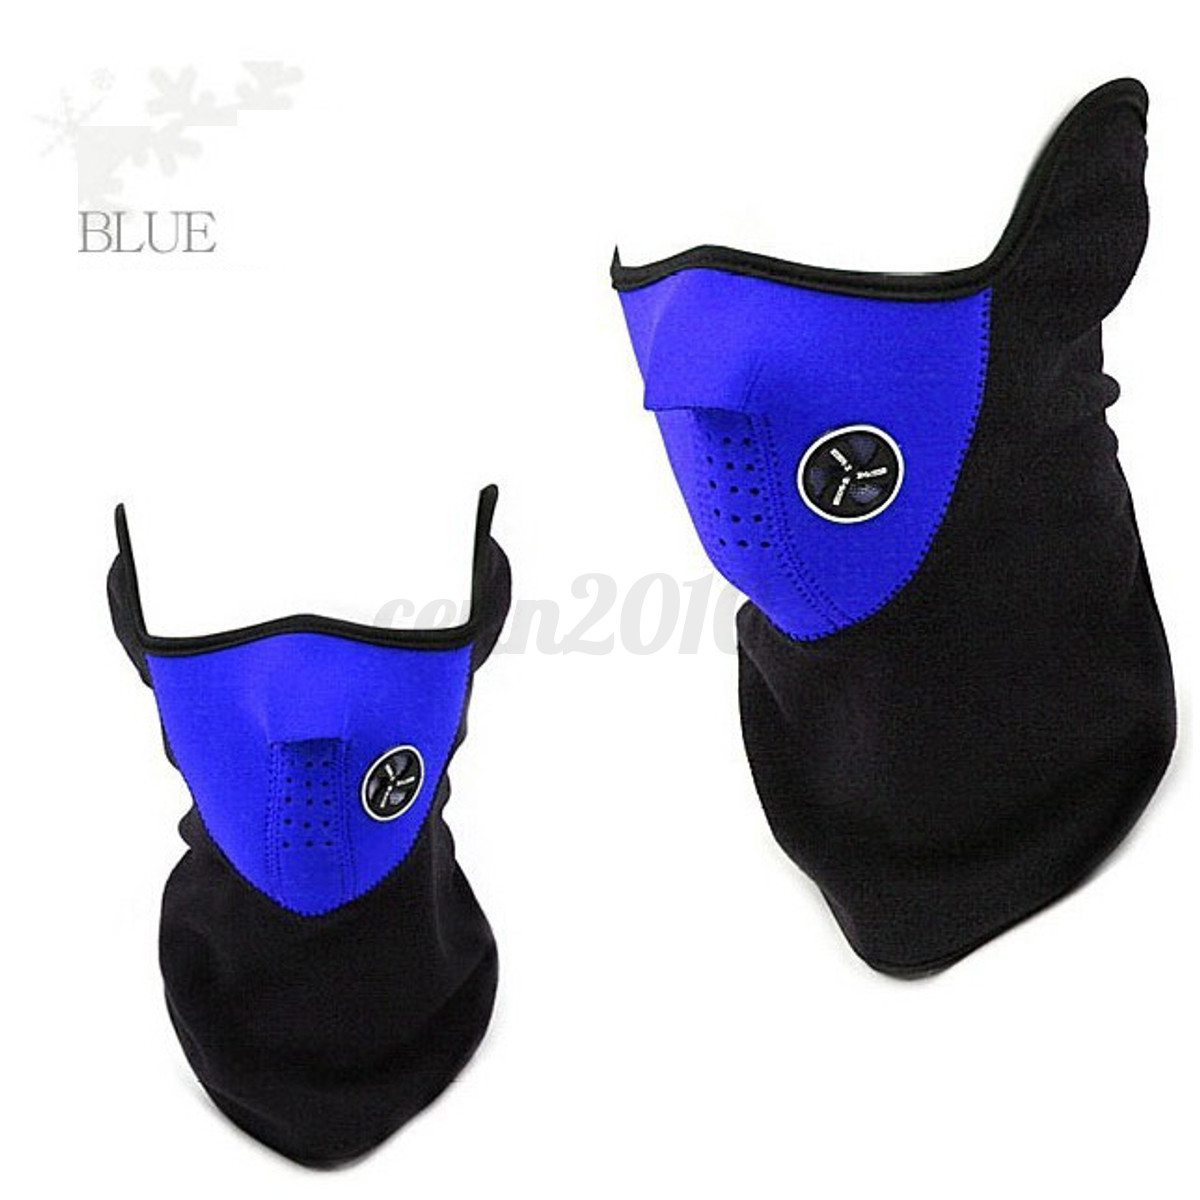 Details about 6 in1 Thermal Fleece Ski Face Mask Balaclava Hood Neck ...